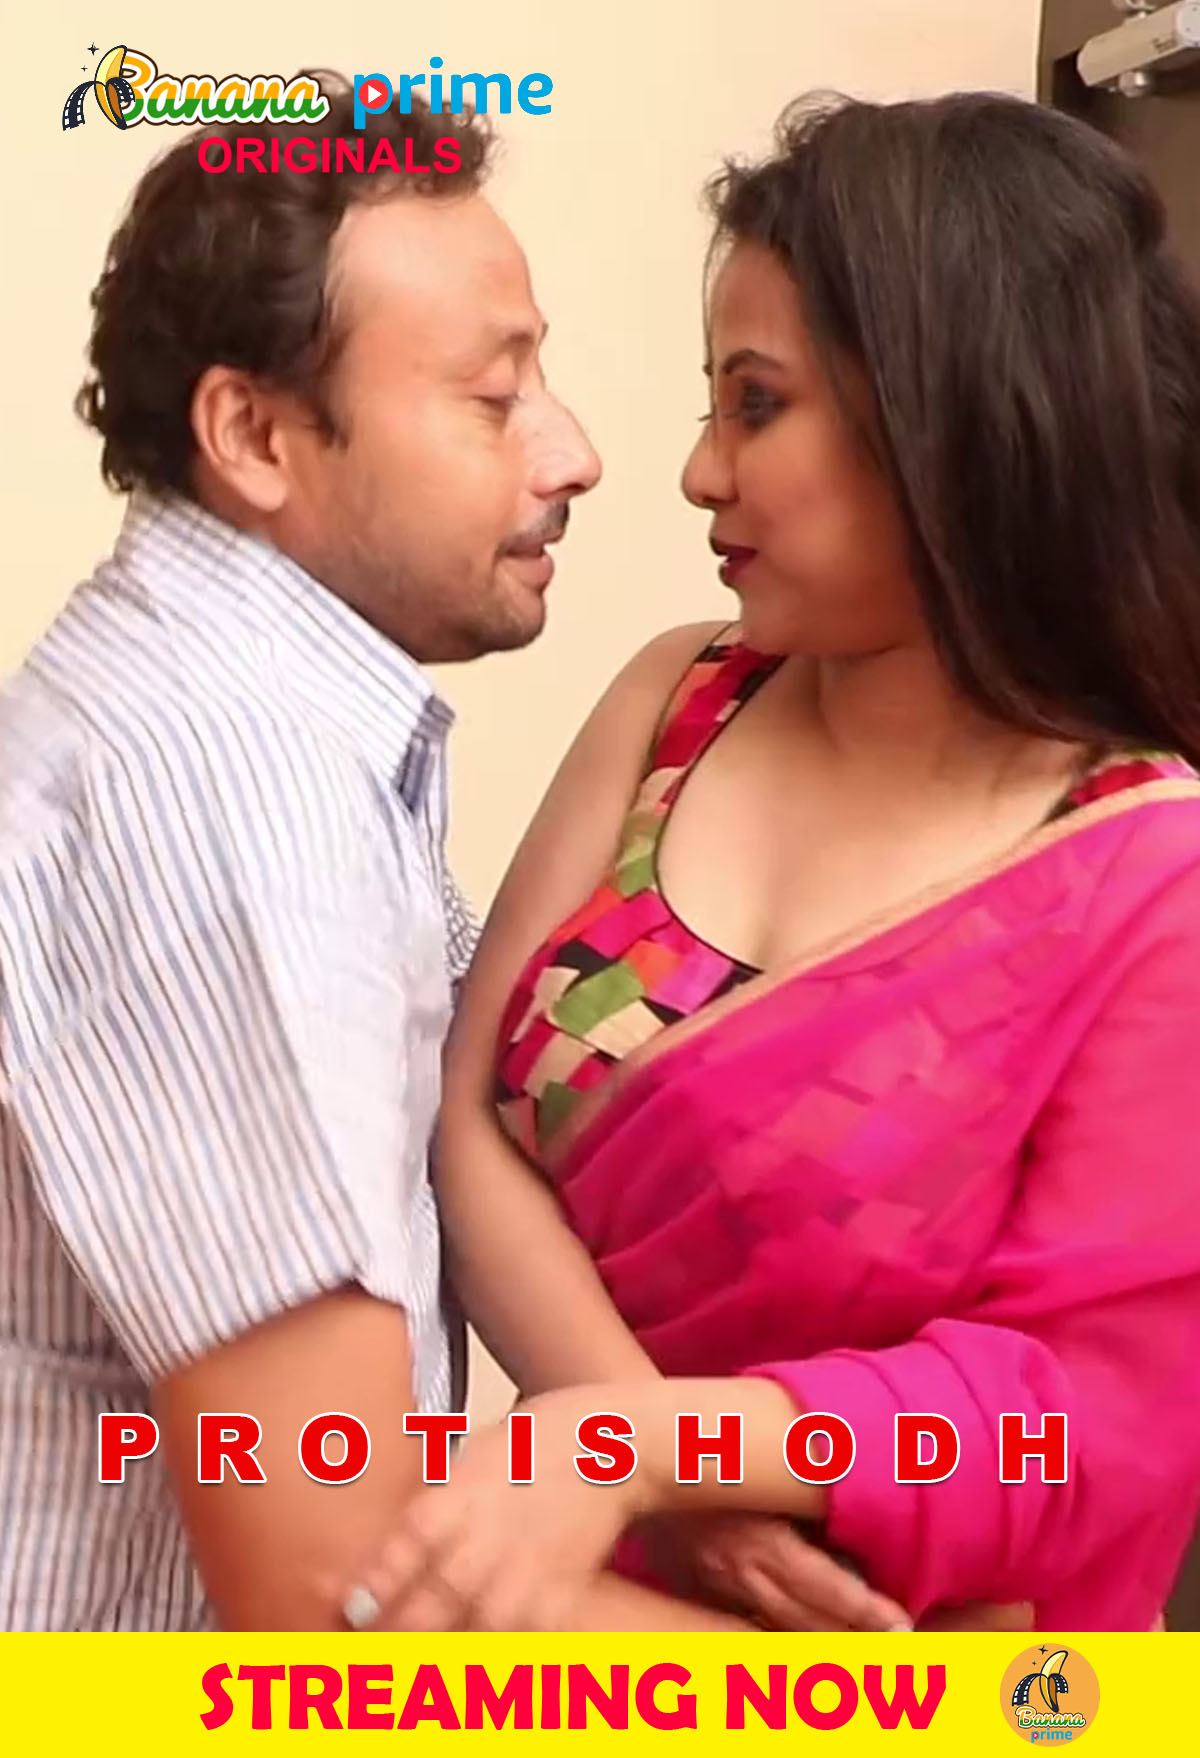 Protishodh 2020 BananaPrime Originals Bengali Short Film 720p HDRip 90MB x264 AAC